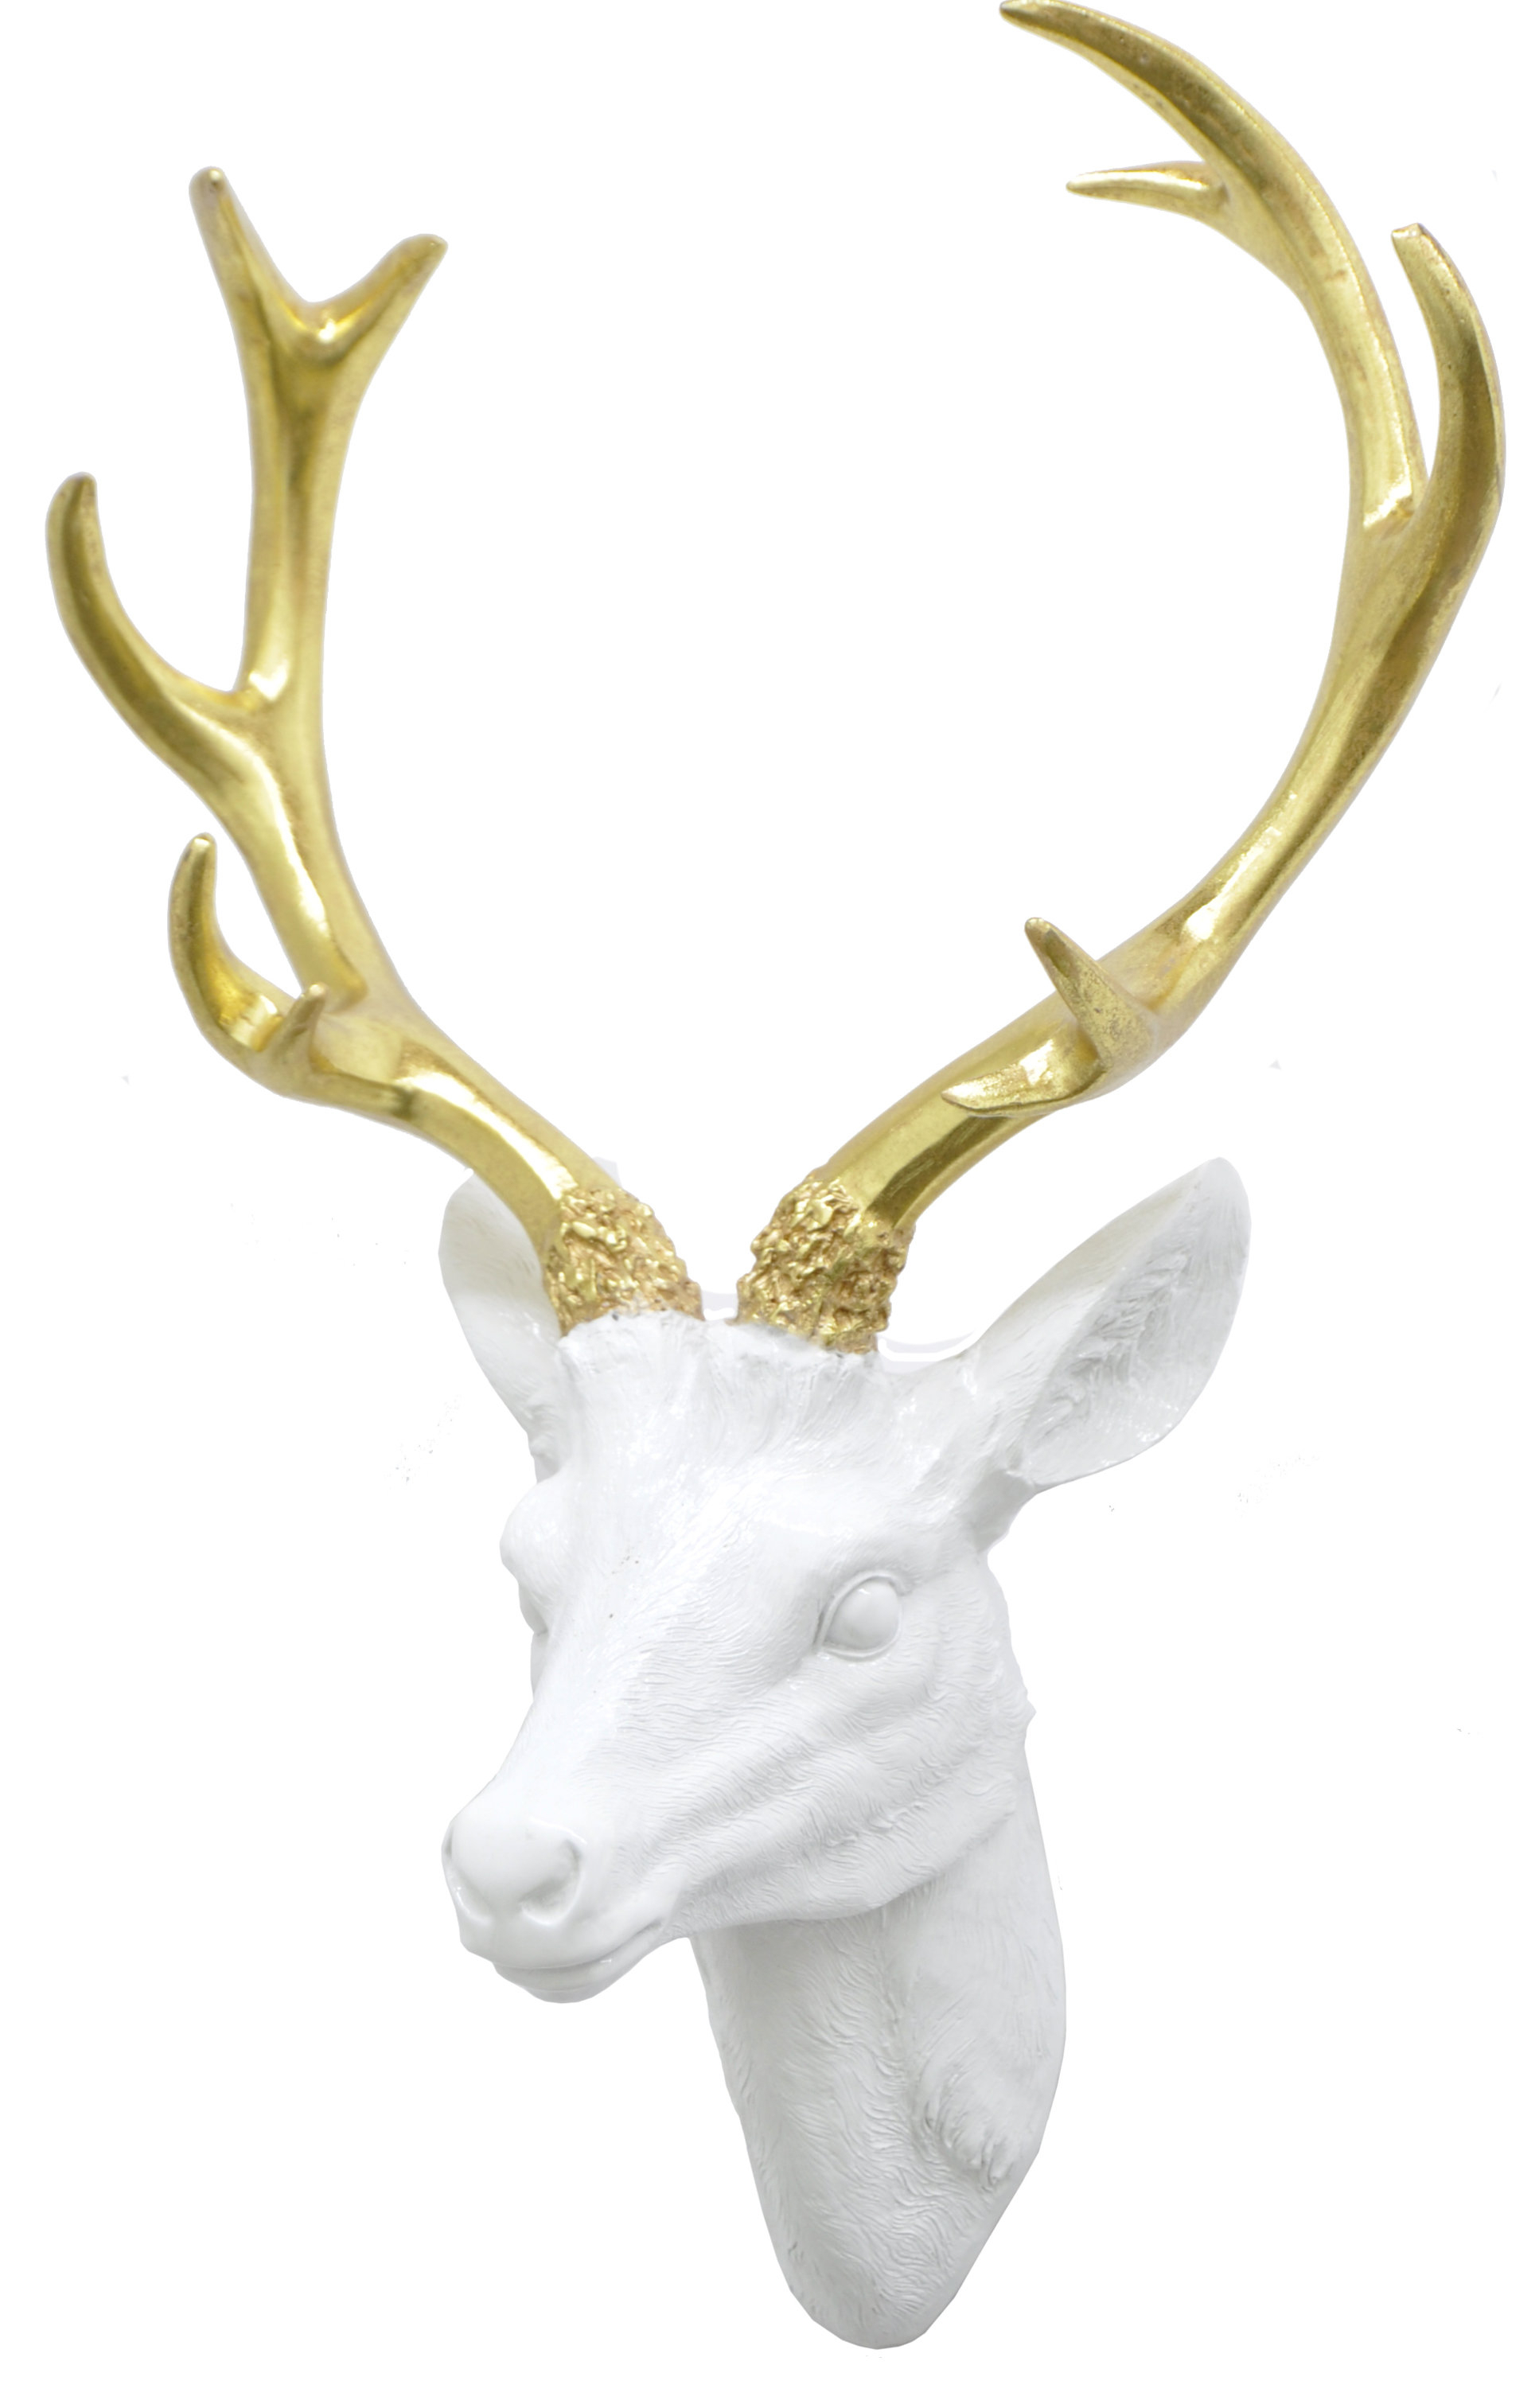 Highlands Ranch The Templeton Wall Decor Pertaining To Famous Three Hands Co. Resin Deer Head Wall Décor & Reviews (Gallery 9 of 20)